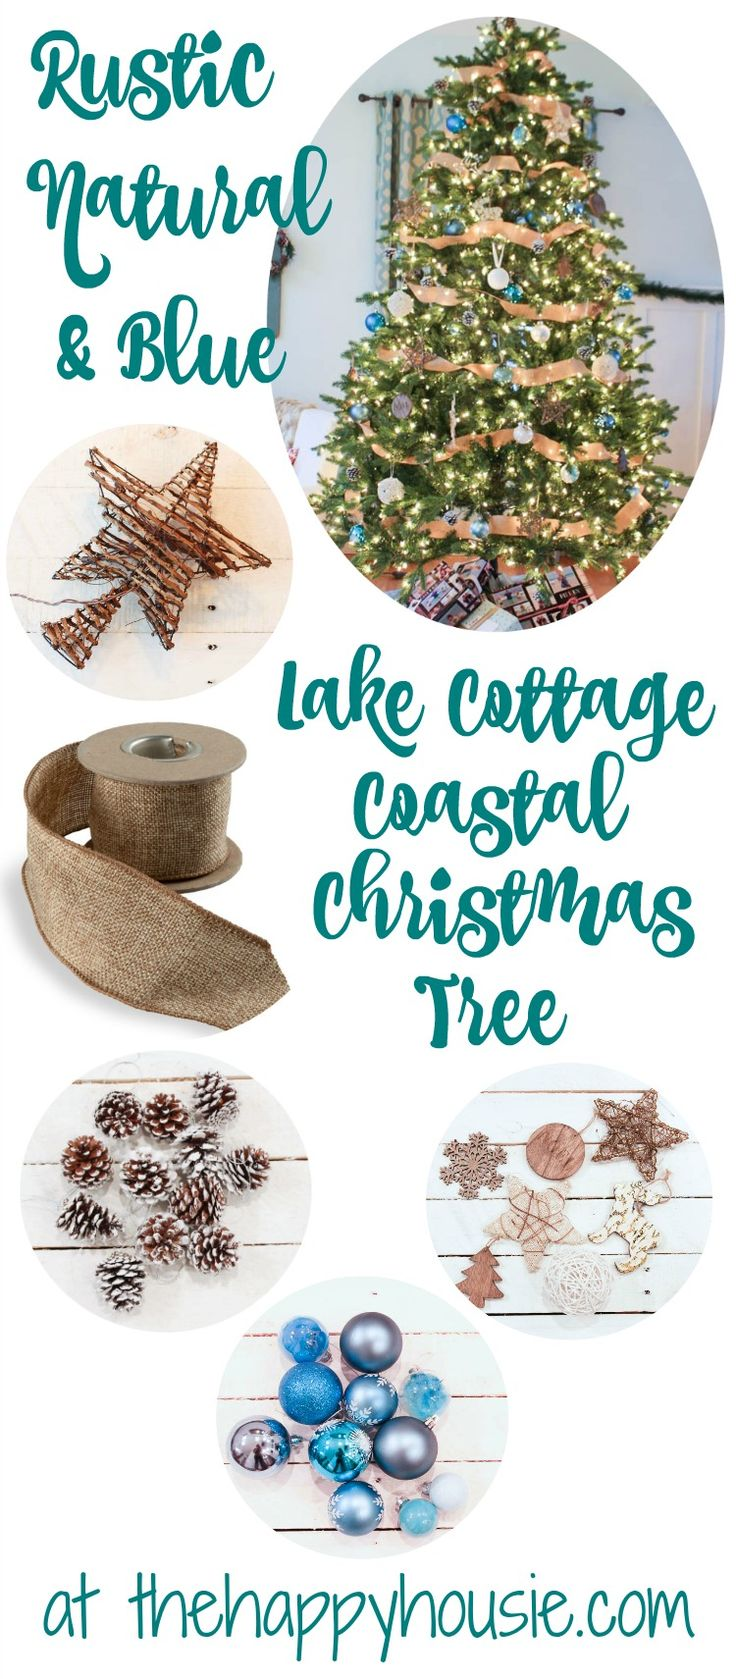 Our rustic natural blue lake cottage coastal christmas for Stahlwandbecken 3 60 x 0 90